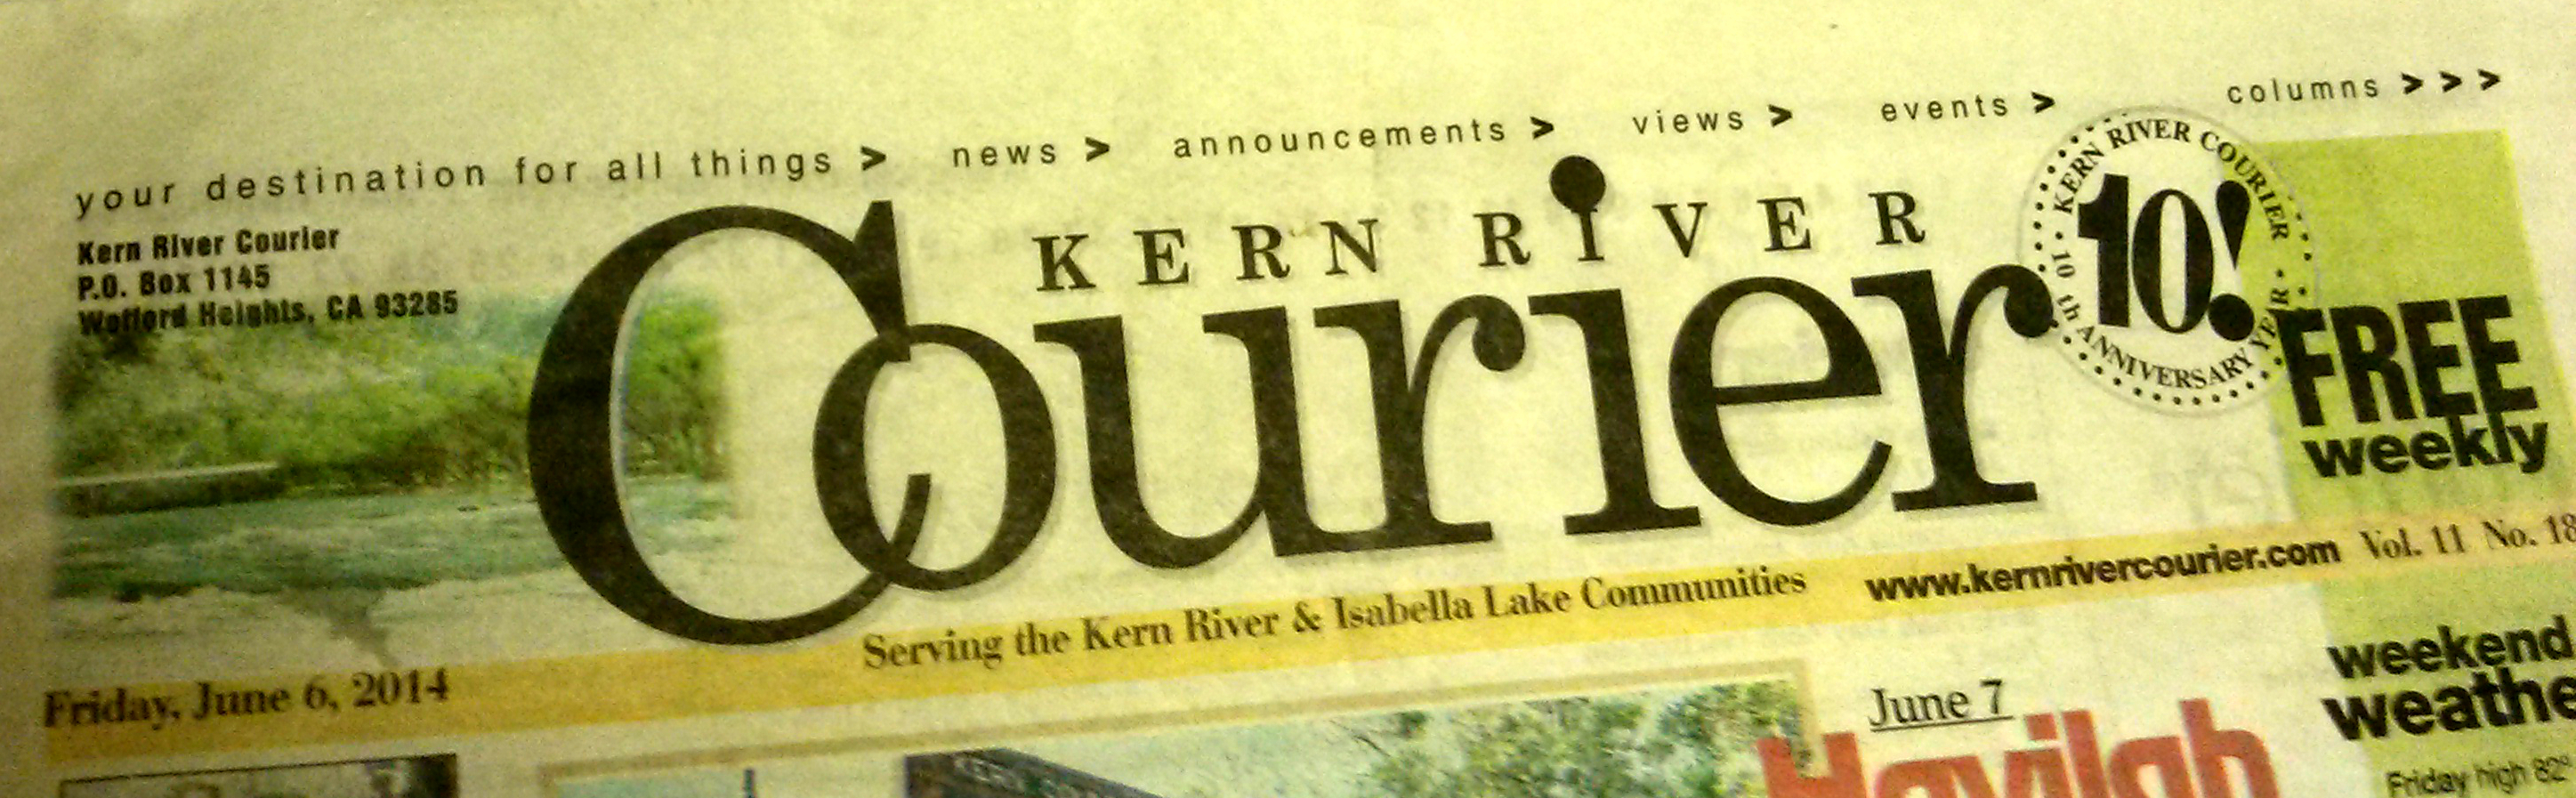 Kern River Courier